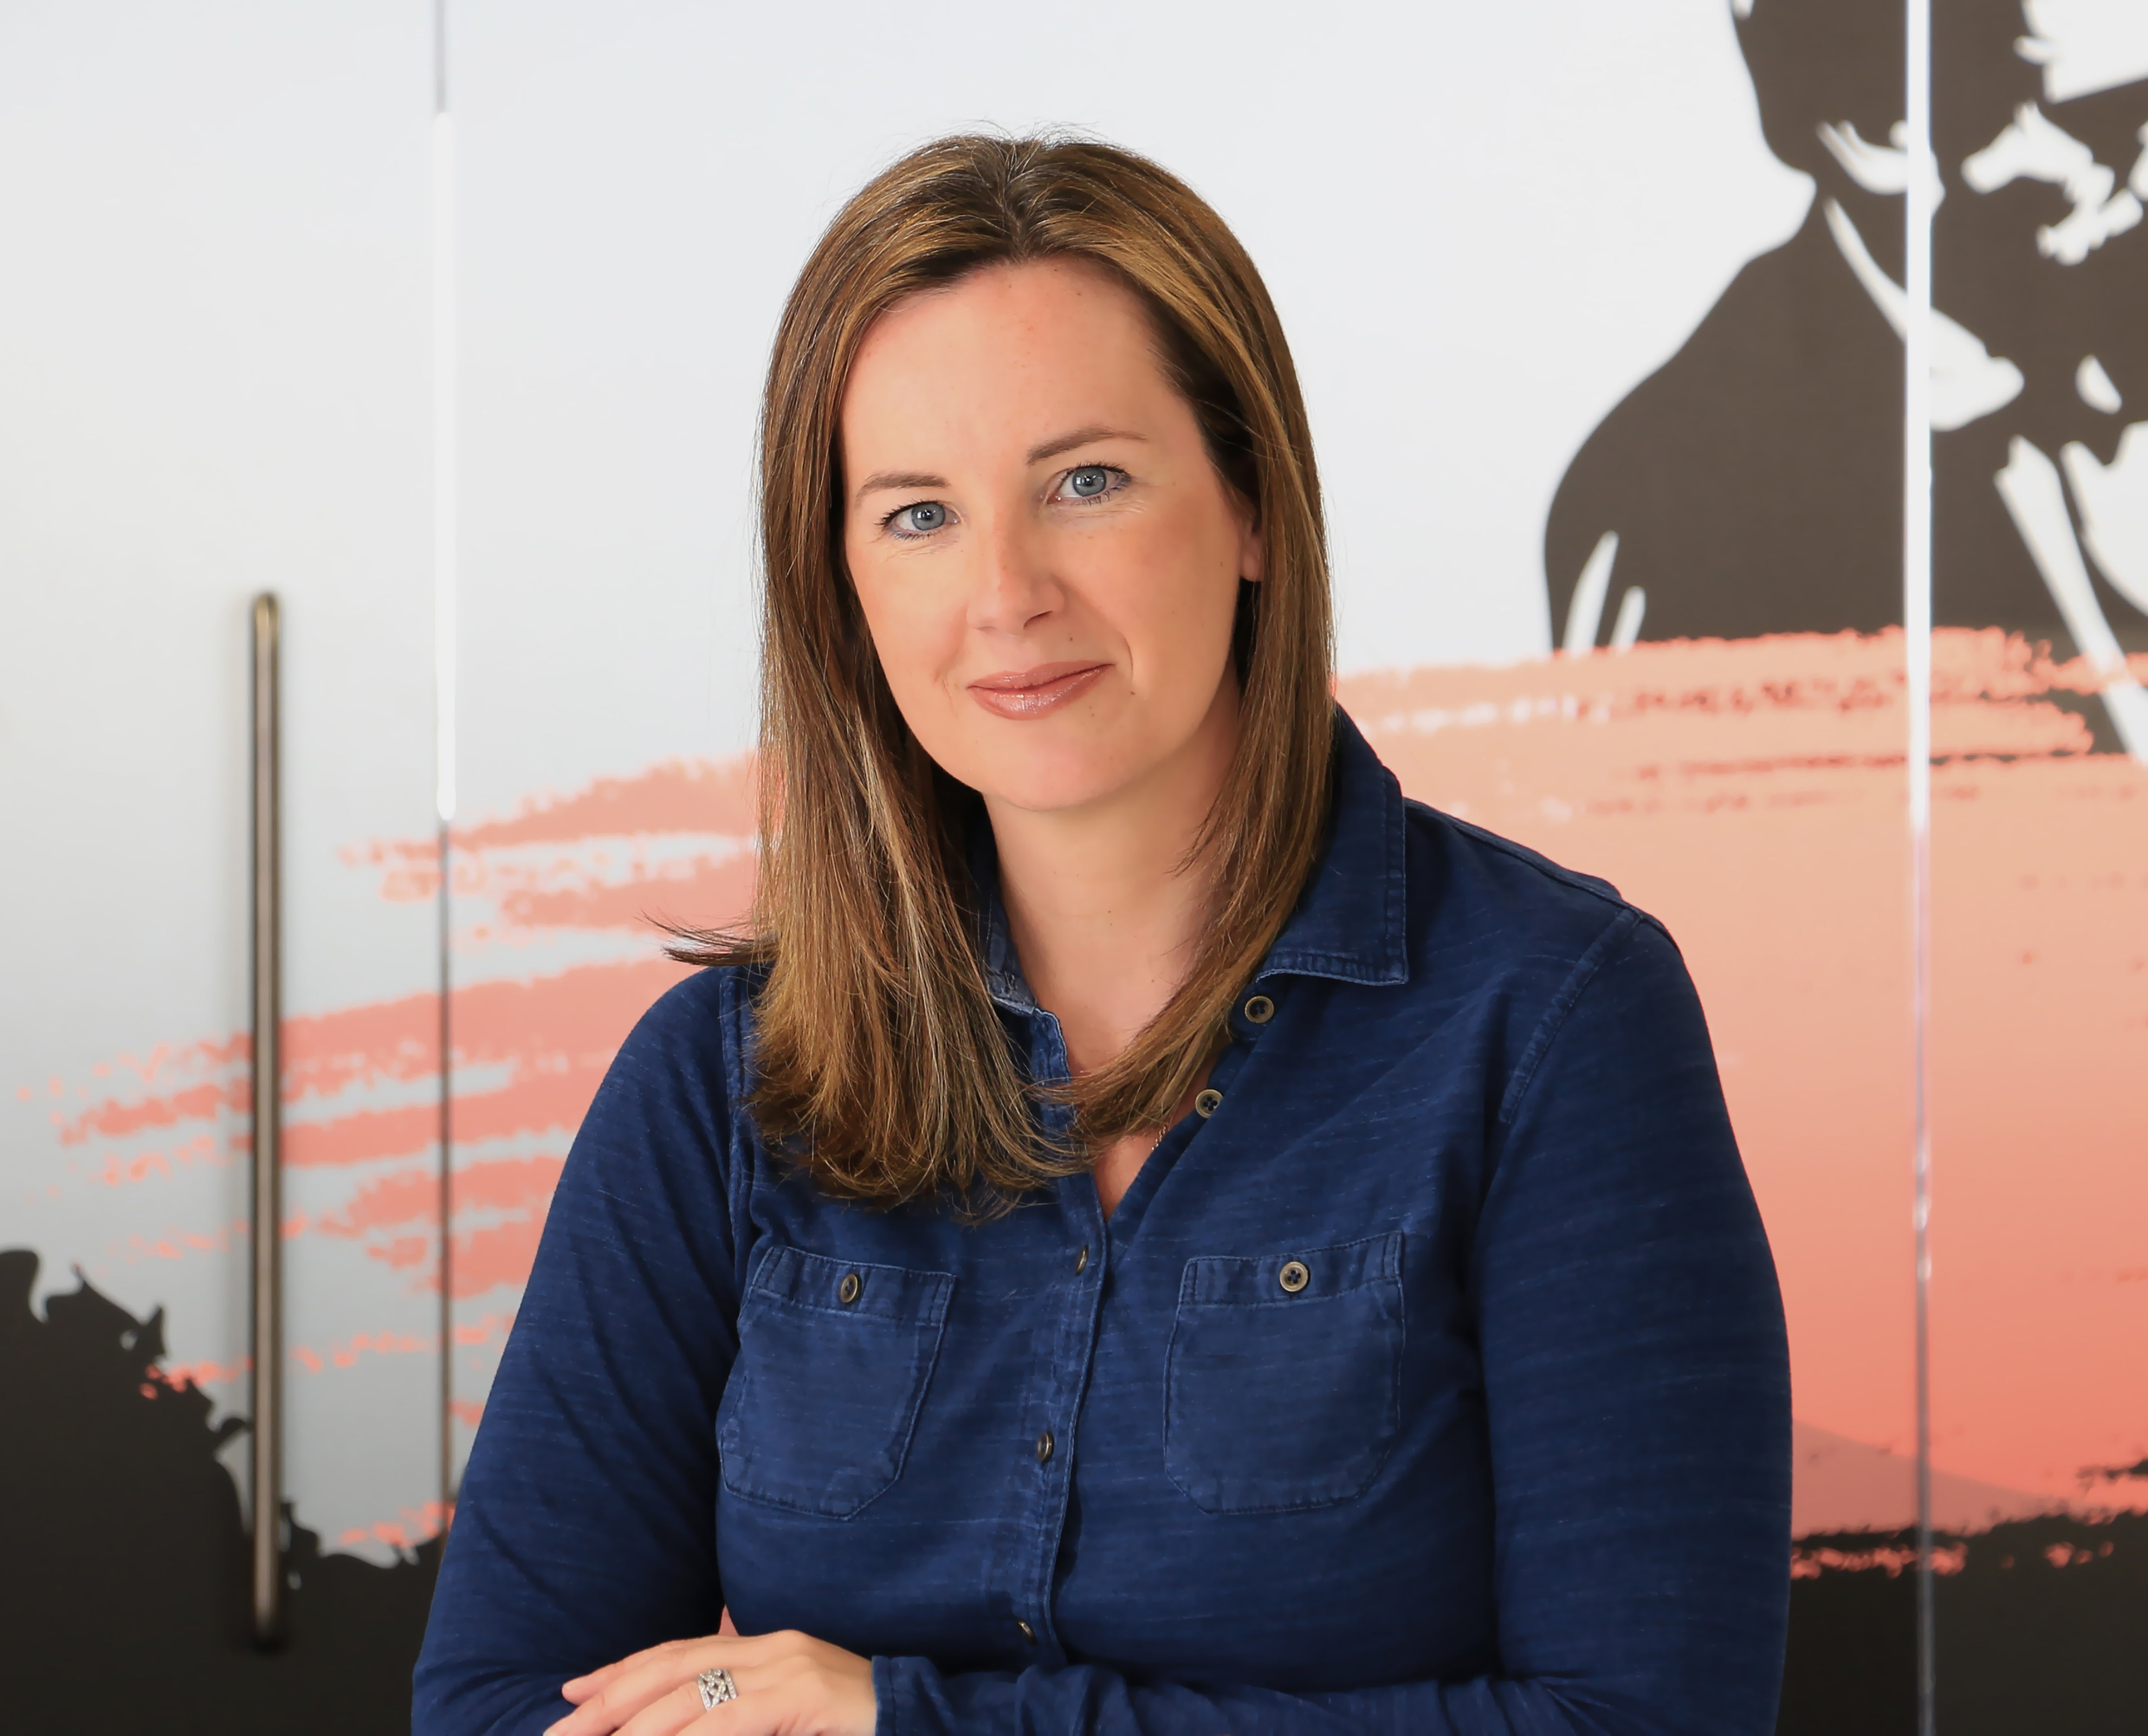 Rachel McDonald, Managing Director, Dentsu Aegis Network, North